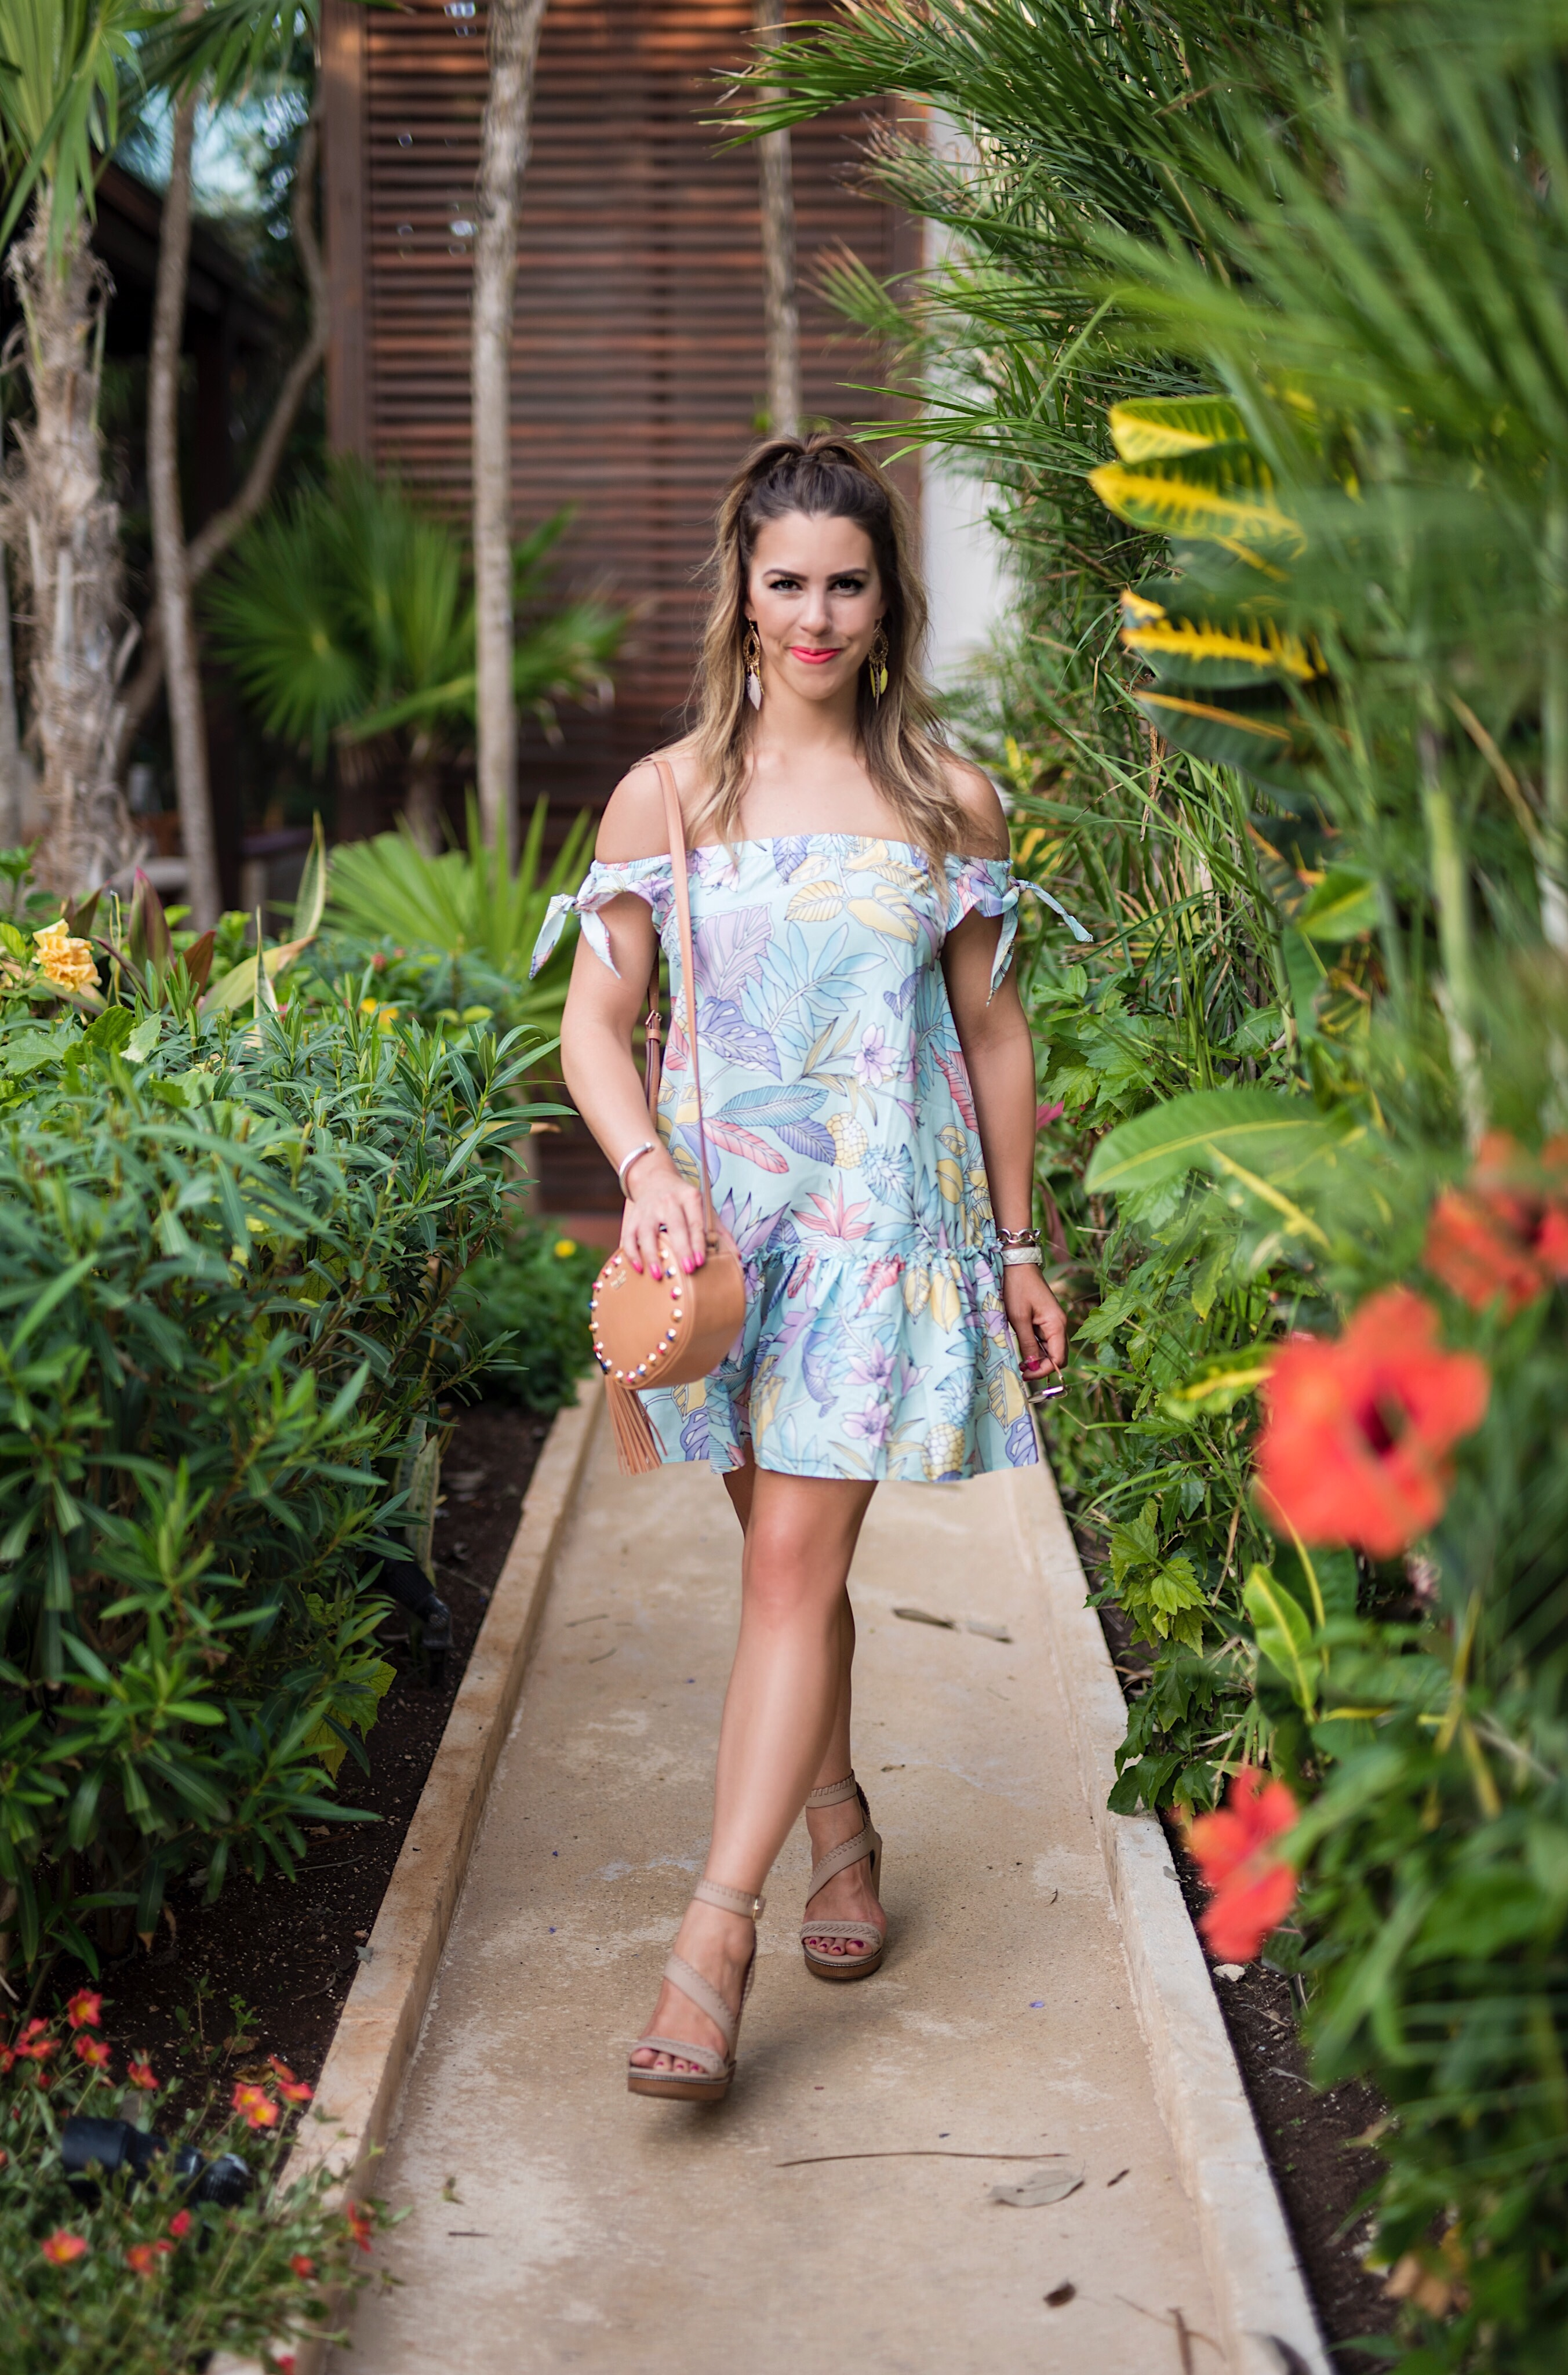 pineapple paradise, pineapple dress, off the shoulder tropical dress, off the shoulder dress, what to wear on vacation, cute vacation dresses, vacation dresses, off the shoulder pineapple dress, cute pineapple pattern, pineapple dress, dresses for a tropical vacation, vacation in mexico, what to wear in mexico, here's the skinny, the skinny blog, here's the skinny travel, htstravel